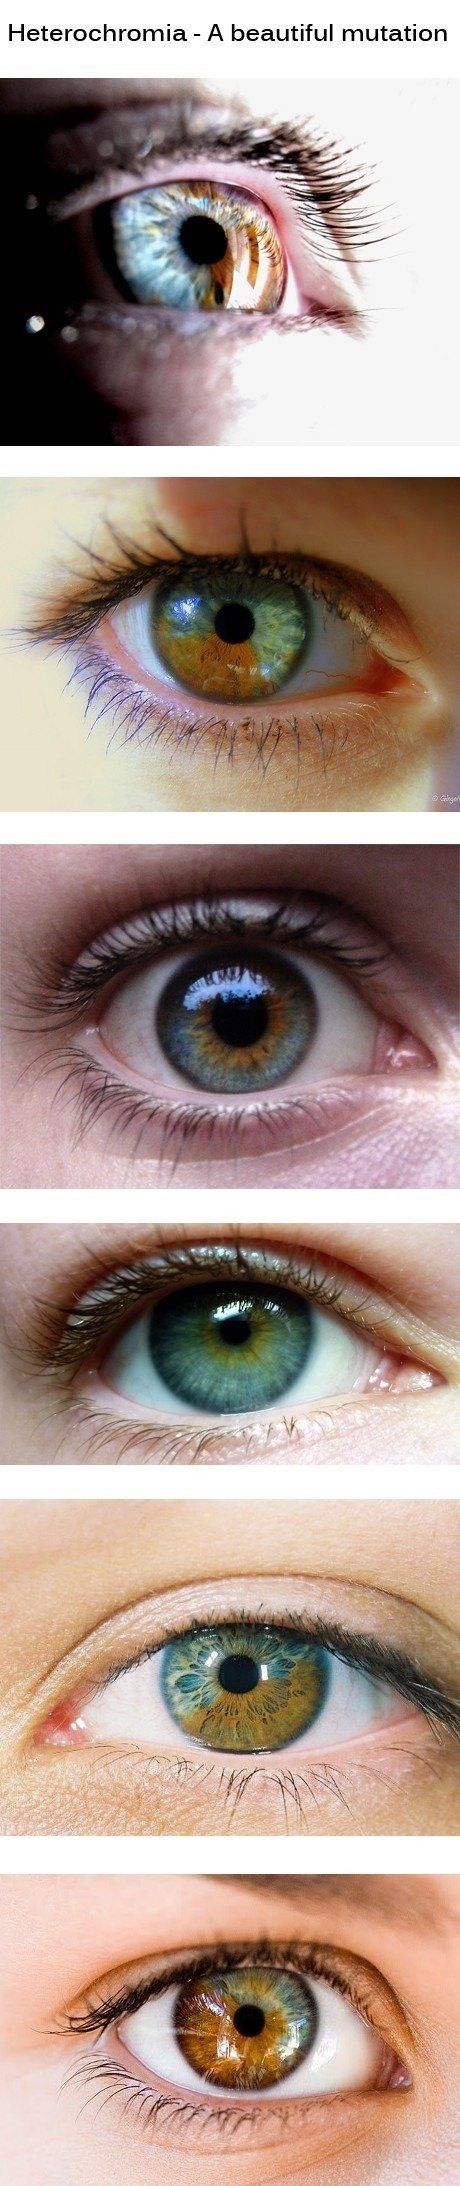 Heterochromia- I have this mutation around the iris of both eyes as well and an amber wedge in my left eye.